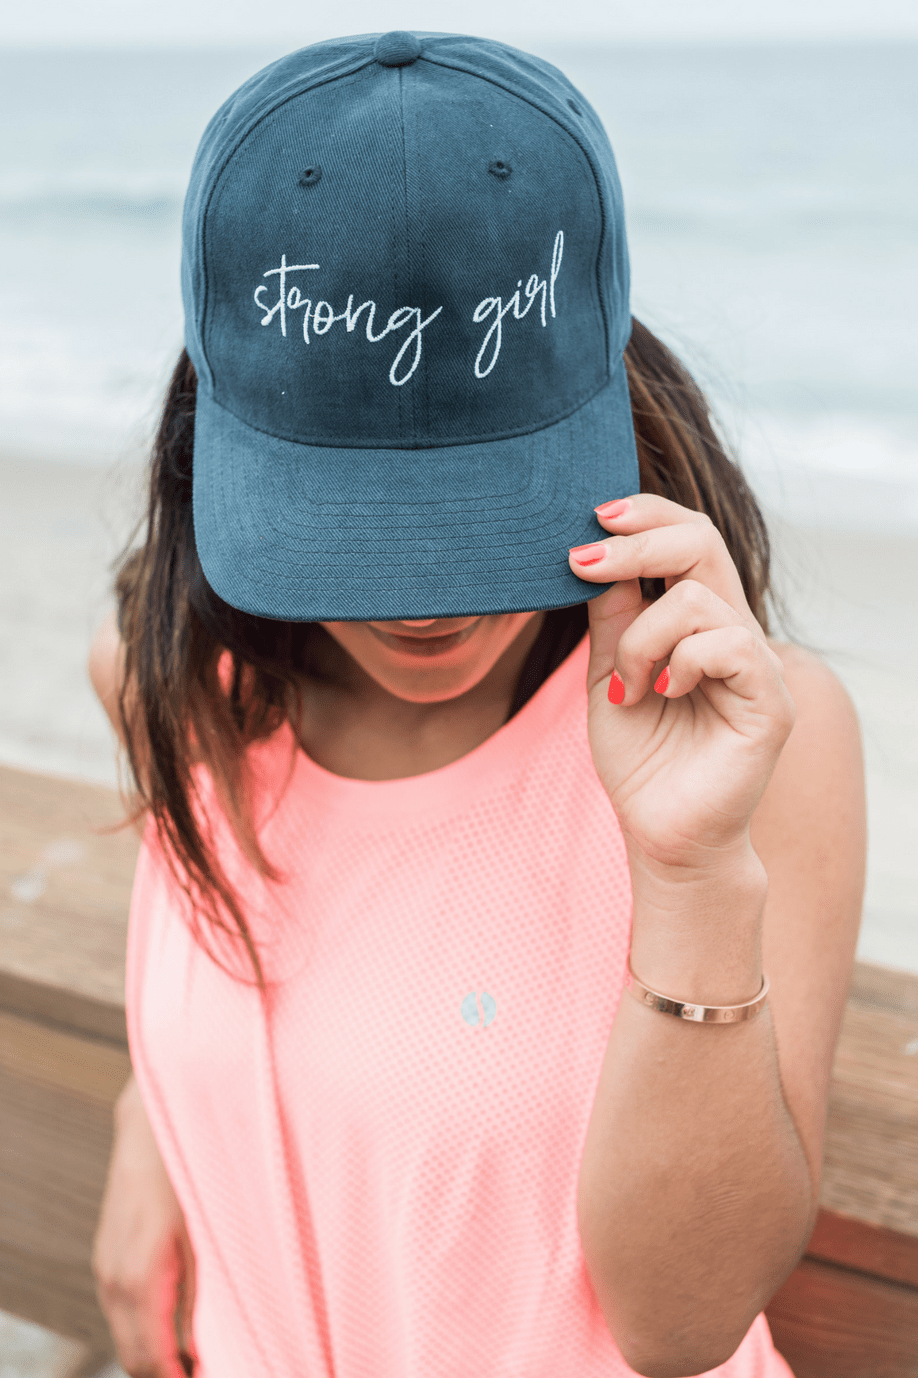 Keep your young athlete cool in girls' hats, beanies and caps. Shop a wide selection of stylish athletic caps for girls from top brands like Nike and Under Armour.